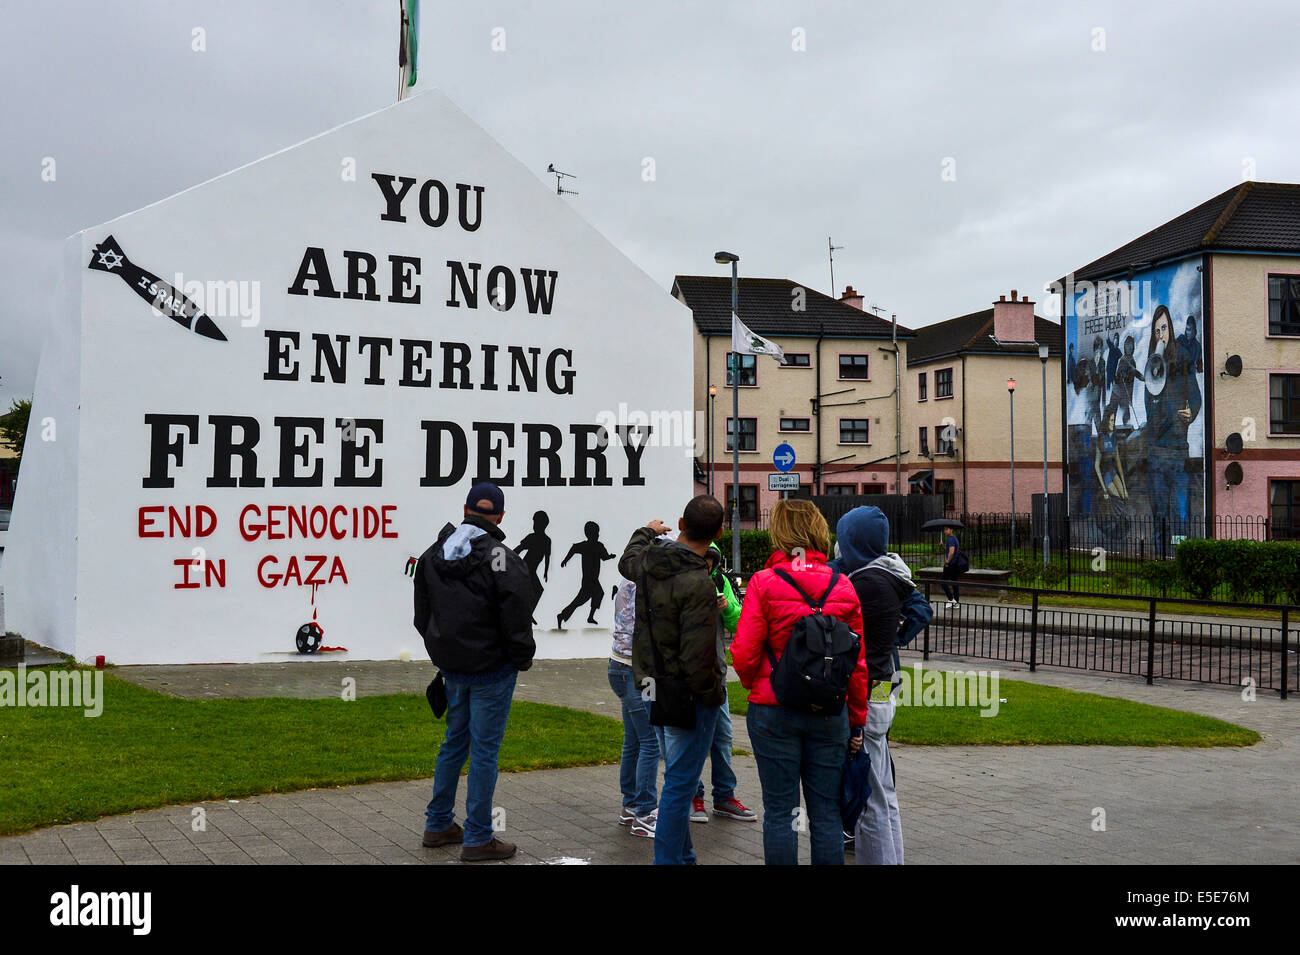 Derry, Londonderry, Northern Ireland - 29 July 2014 Pro-Palestinian Slogan painted on Free Derry Wall. Tourists - Stock Image